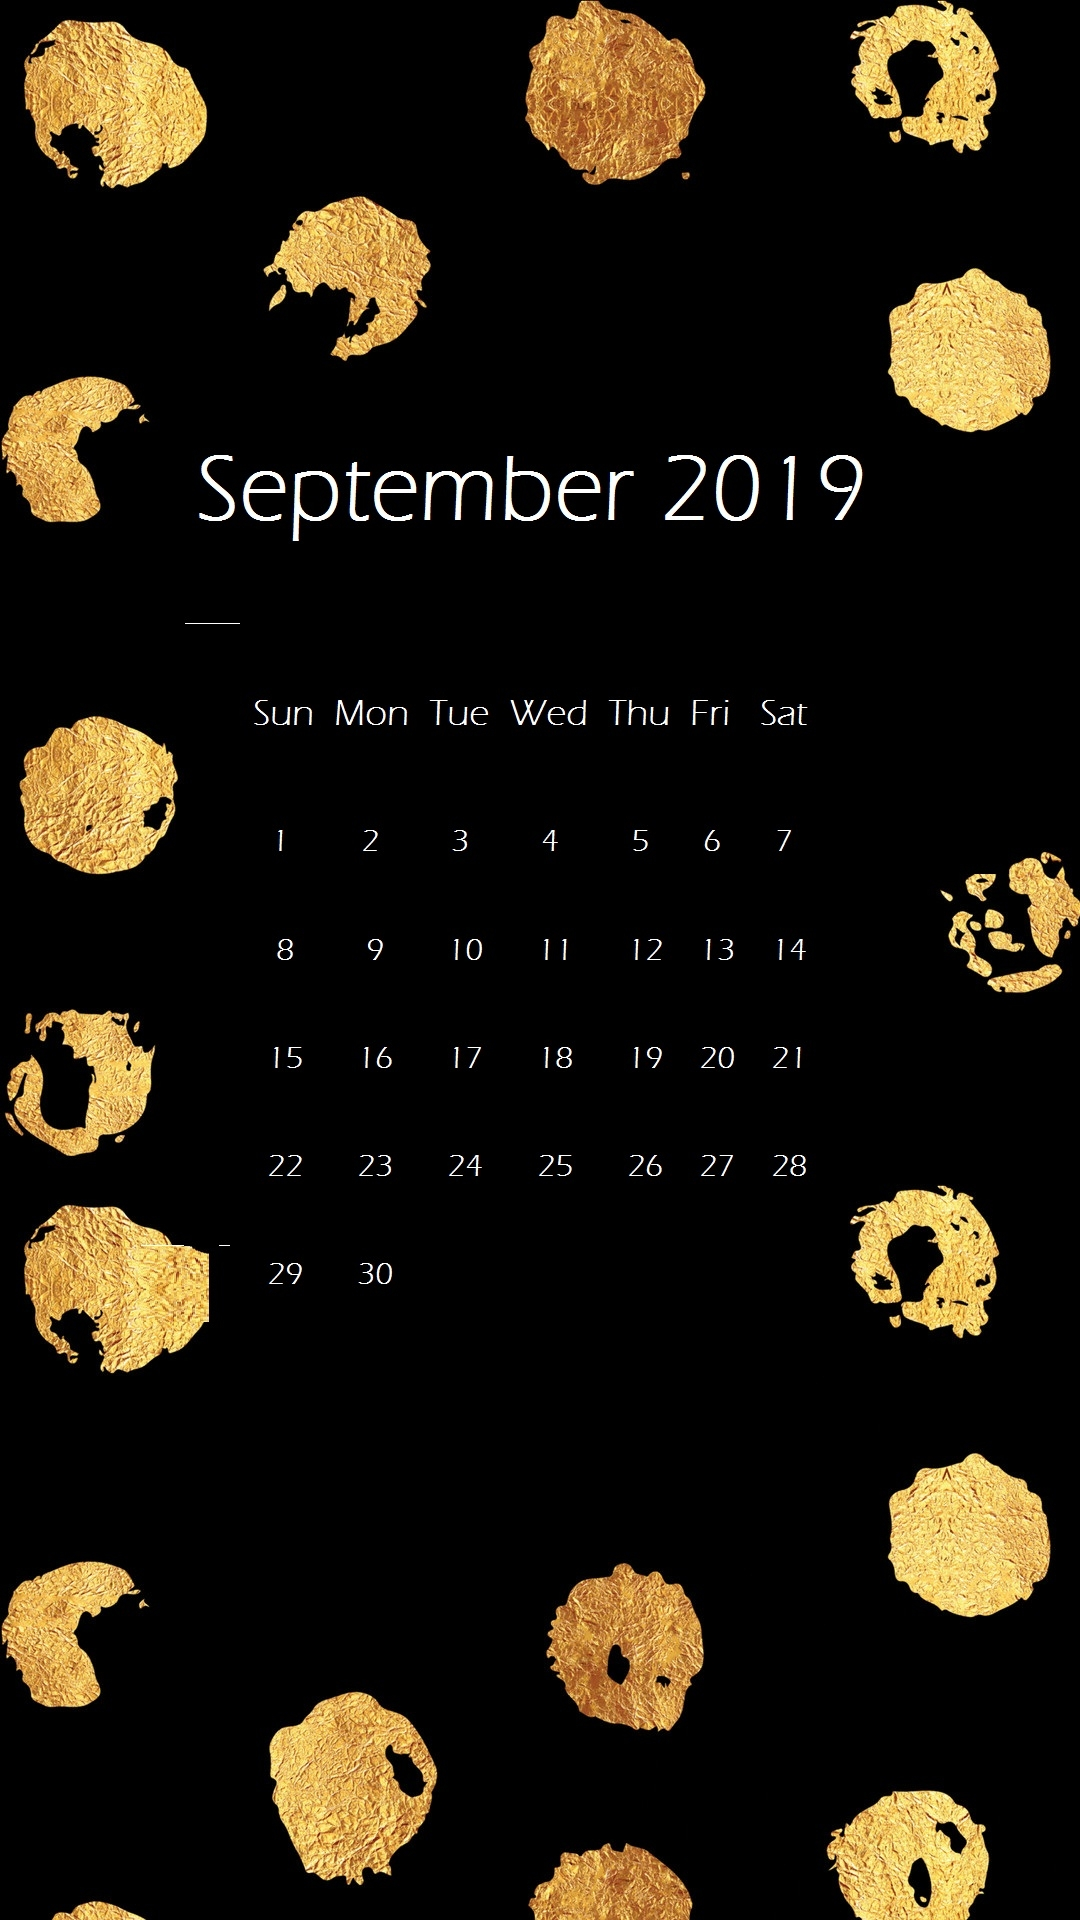 september 2019 iphone wallpaper calendar calendar 2019::September 2019 iPhone Wallpaper Calendar